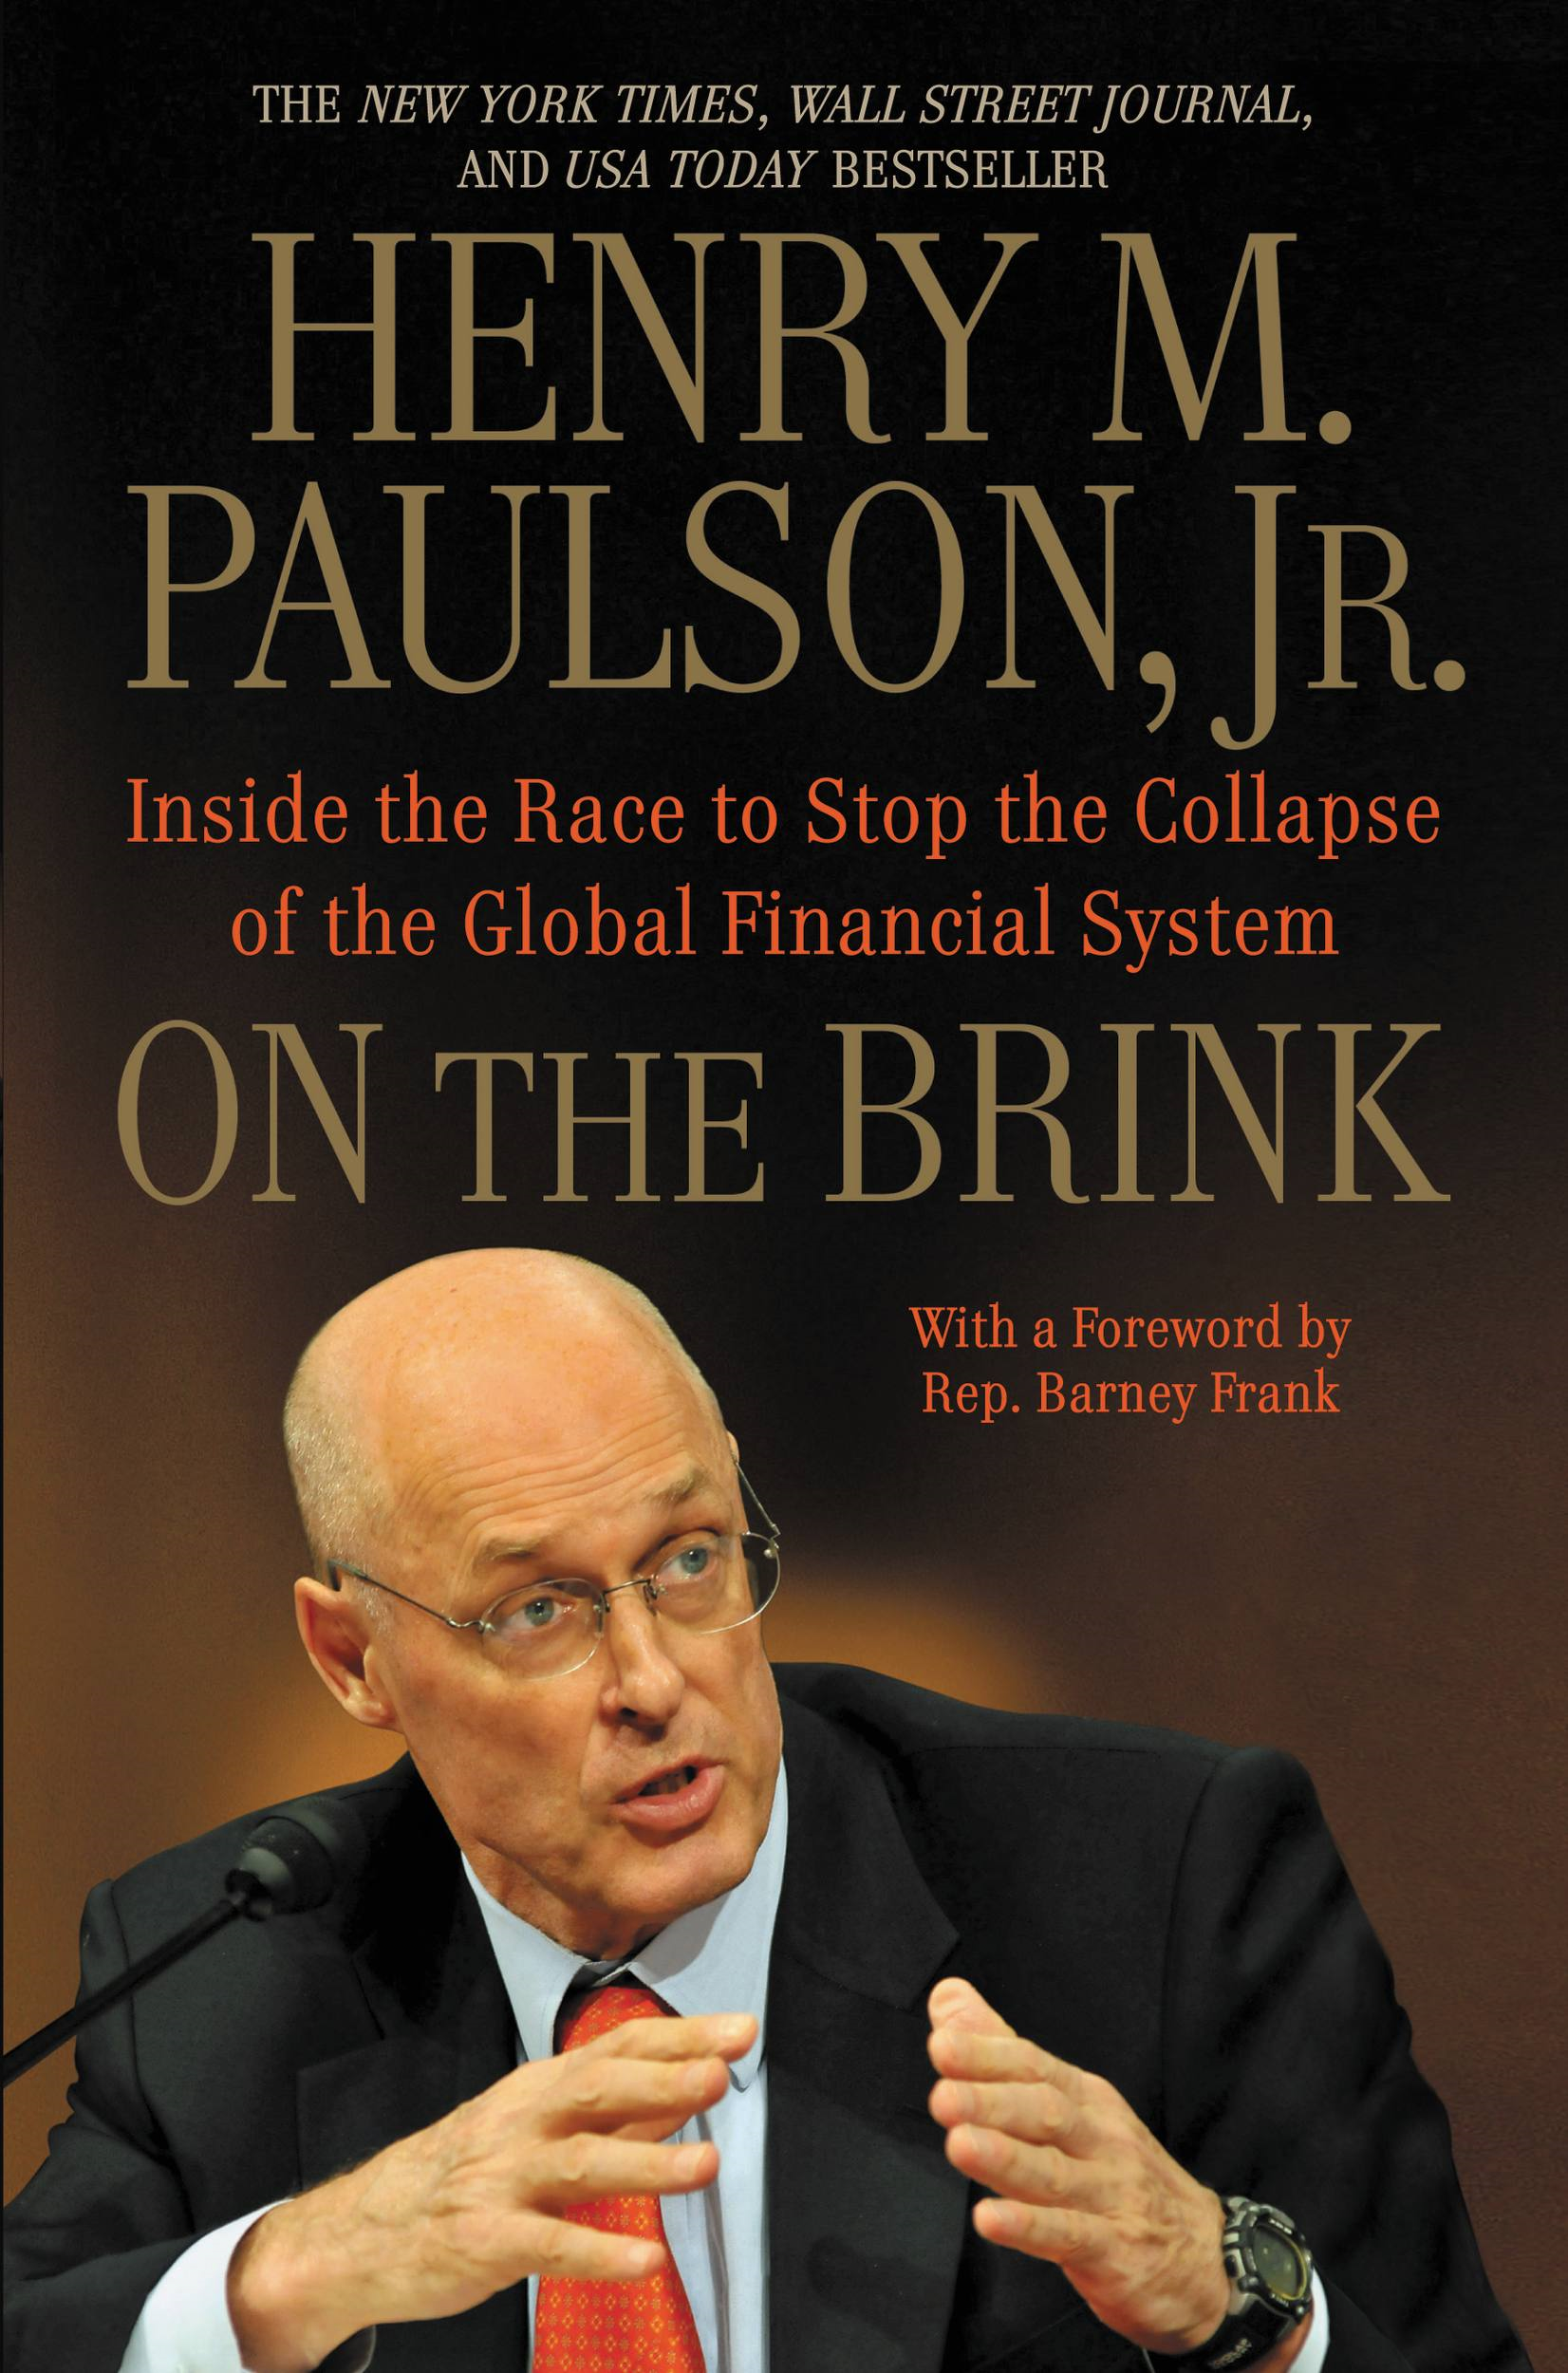 On the Brink By: Henry M. Paulson